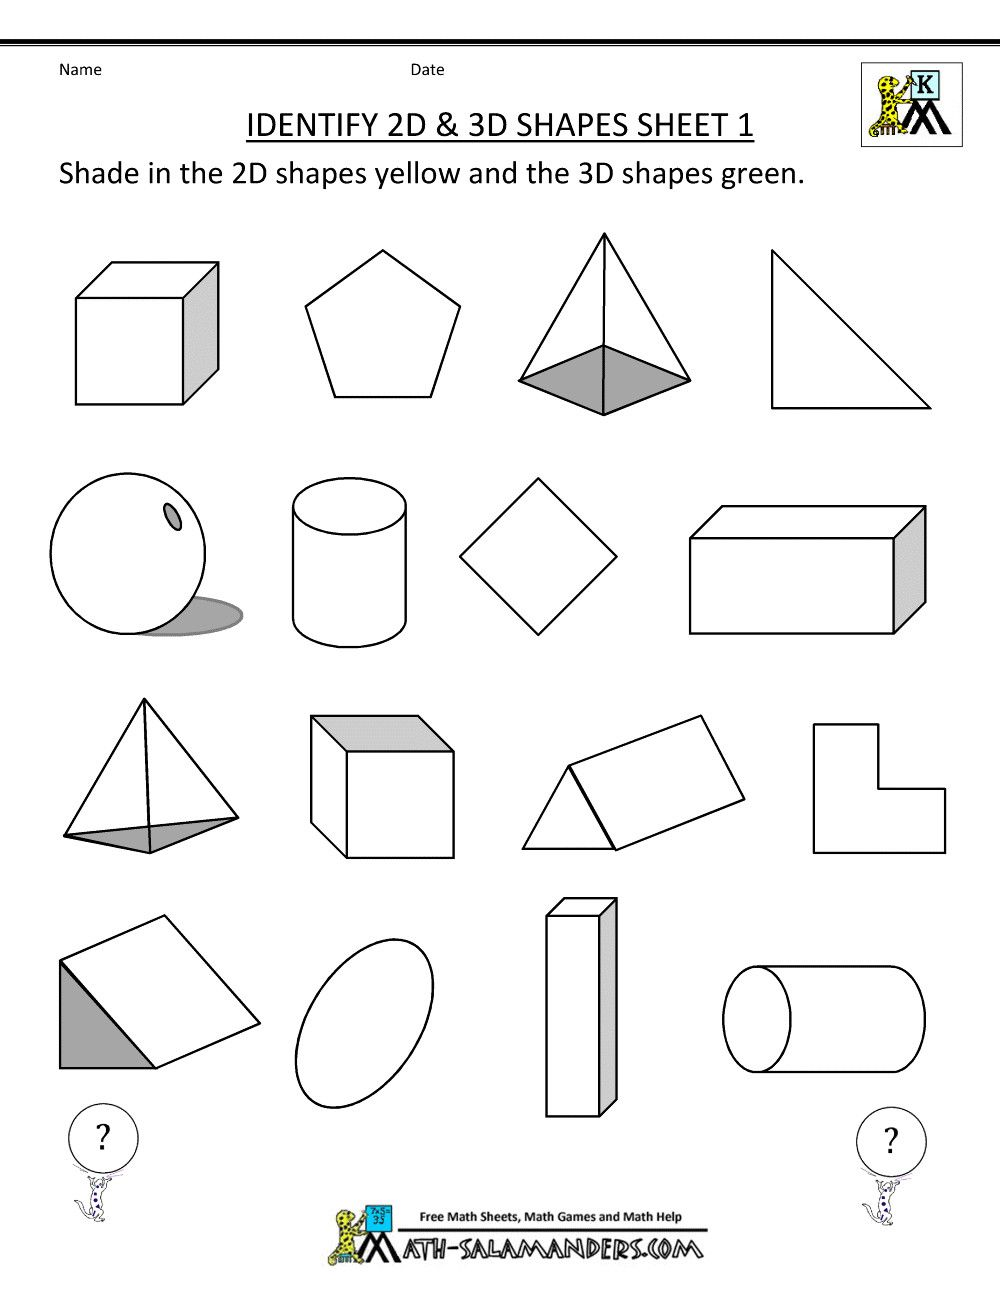 5 Free Math Worksheets First Grade 1 Geometry Draw 2d Shapes Classify And Rize Worksheets F In 2020 Shapes Worksheet Kindergarten Shapes Worksheets Shapes Kindergarten